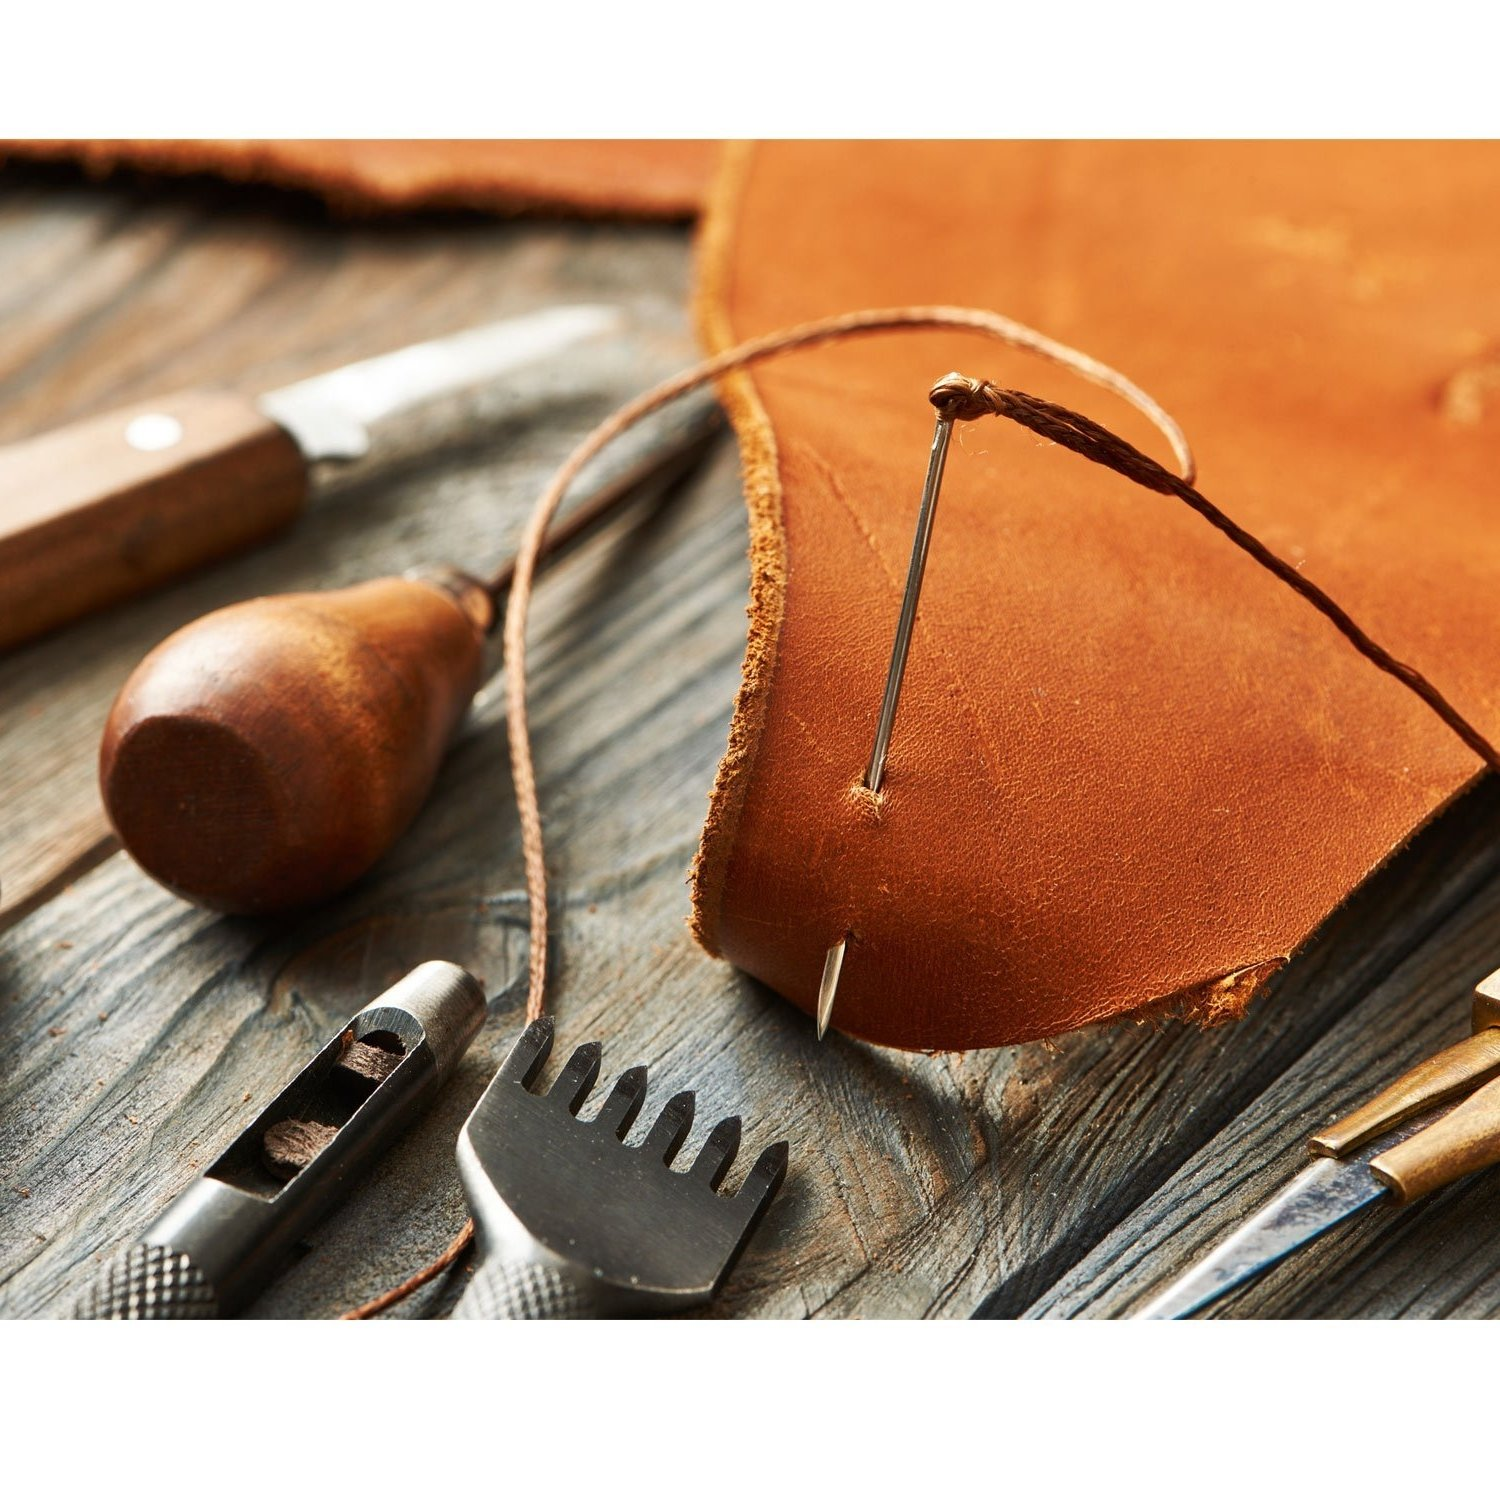 73 mm // 2.9 inch Yarn etc. Good for Sewing Leather Works Set of 10 Long Needles with Large Eye